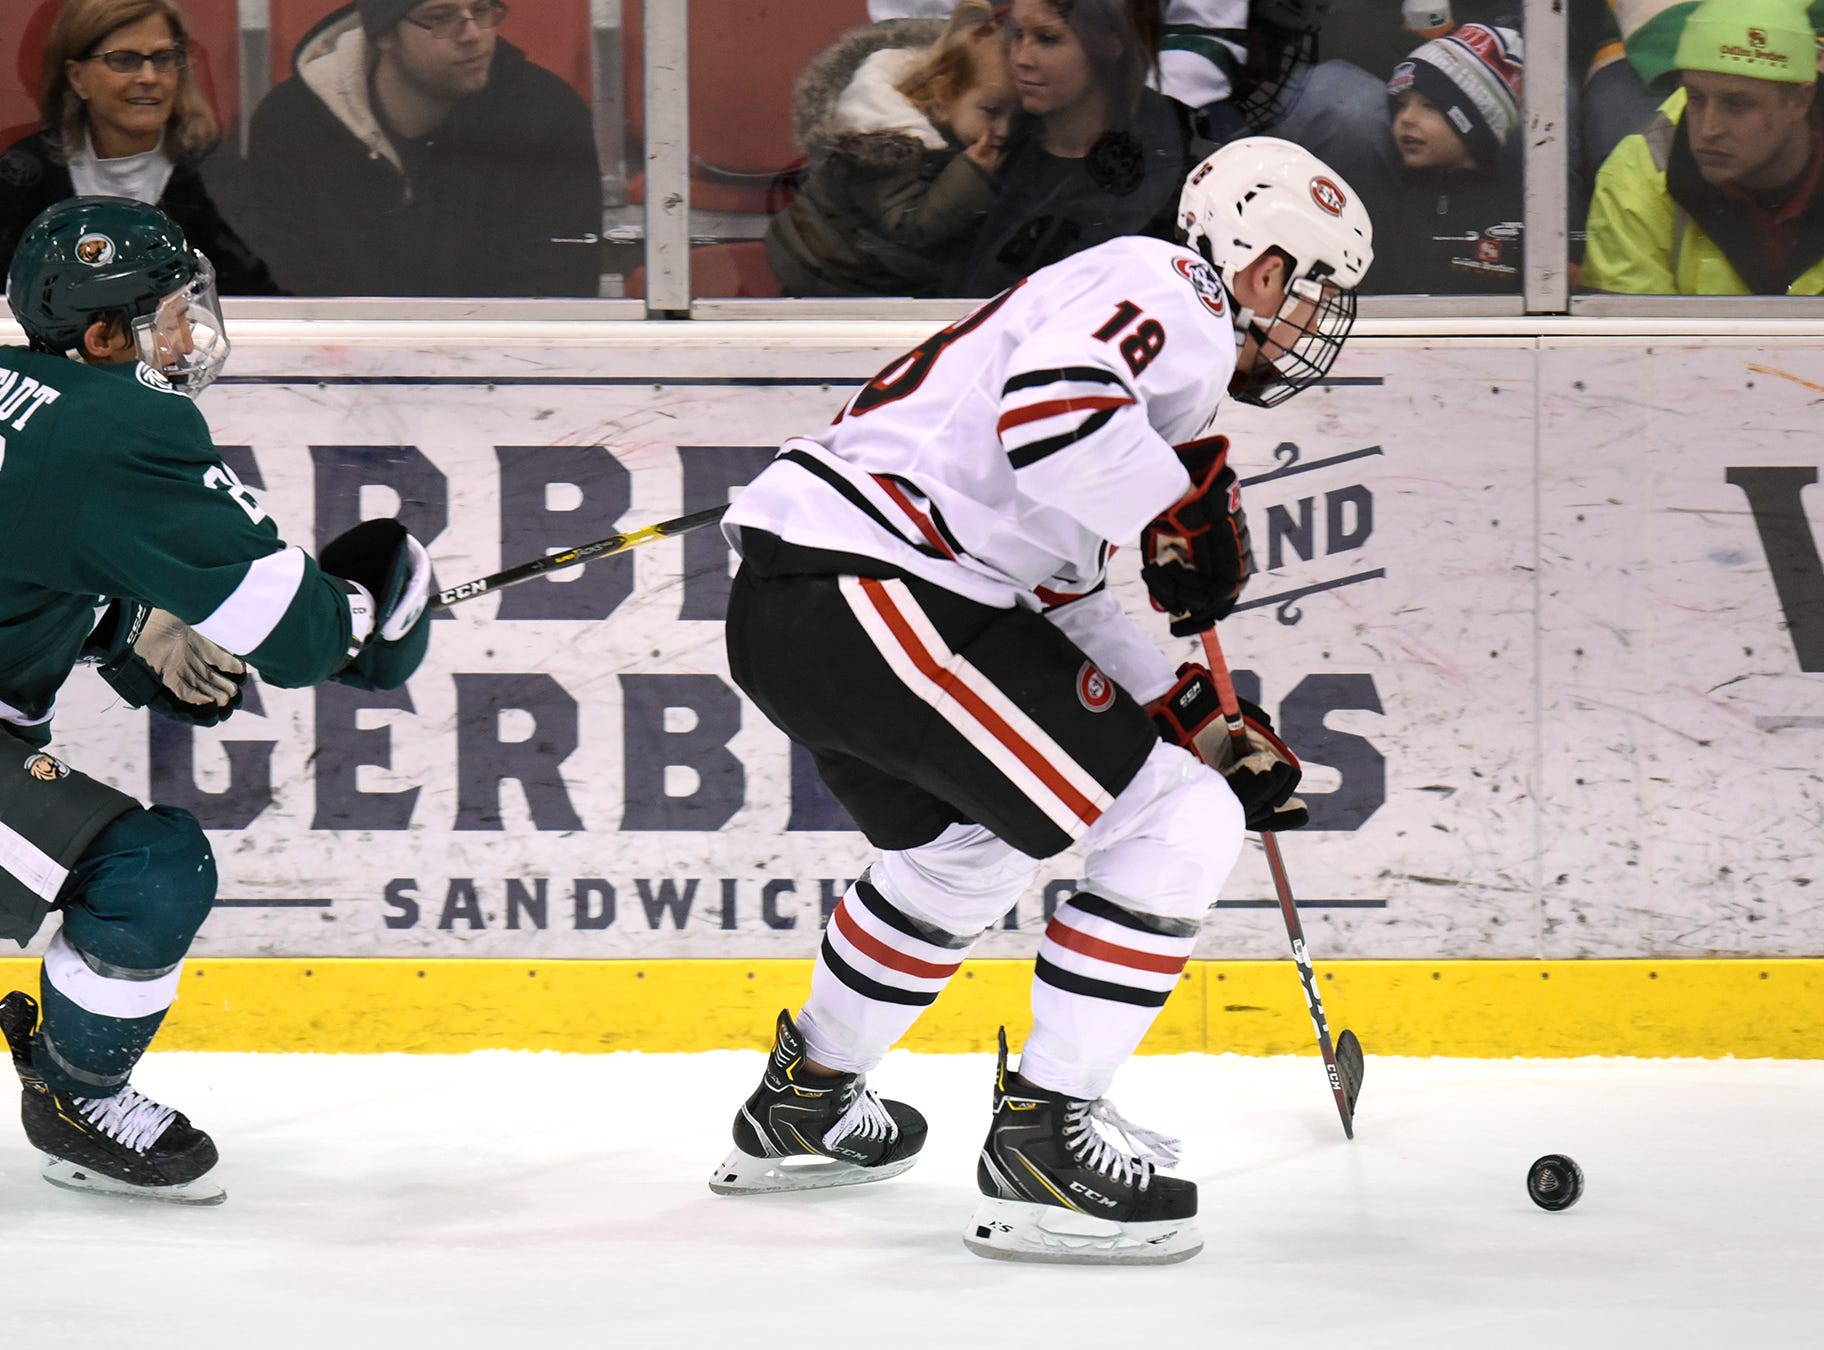 St. Cloud State's Brendan Bushy skates with the puck during the first period of the Saturday, Nov. 17, game against Bemidji State at the Herb Brooks National Hockey Center in St. Cloud.